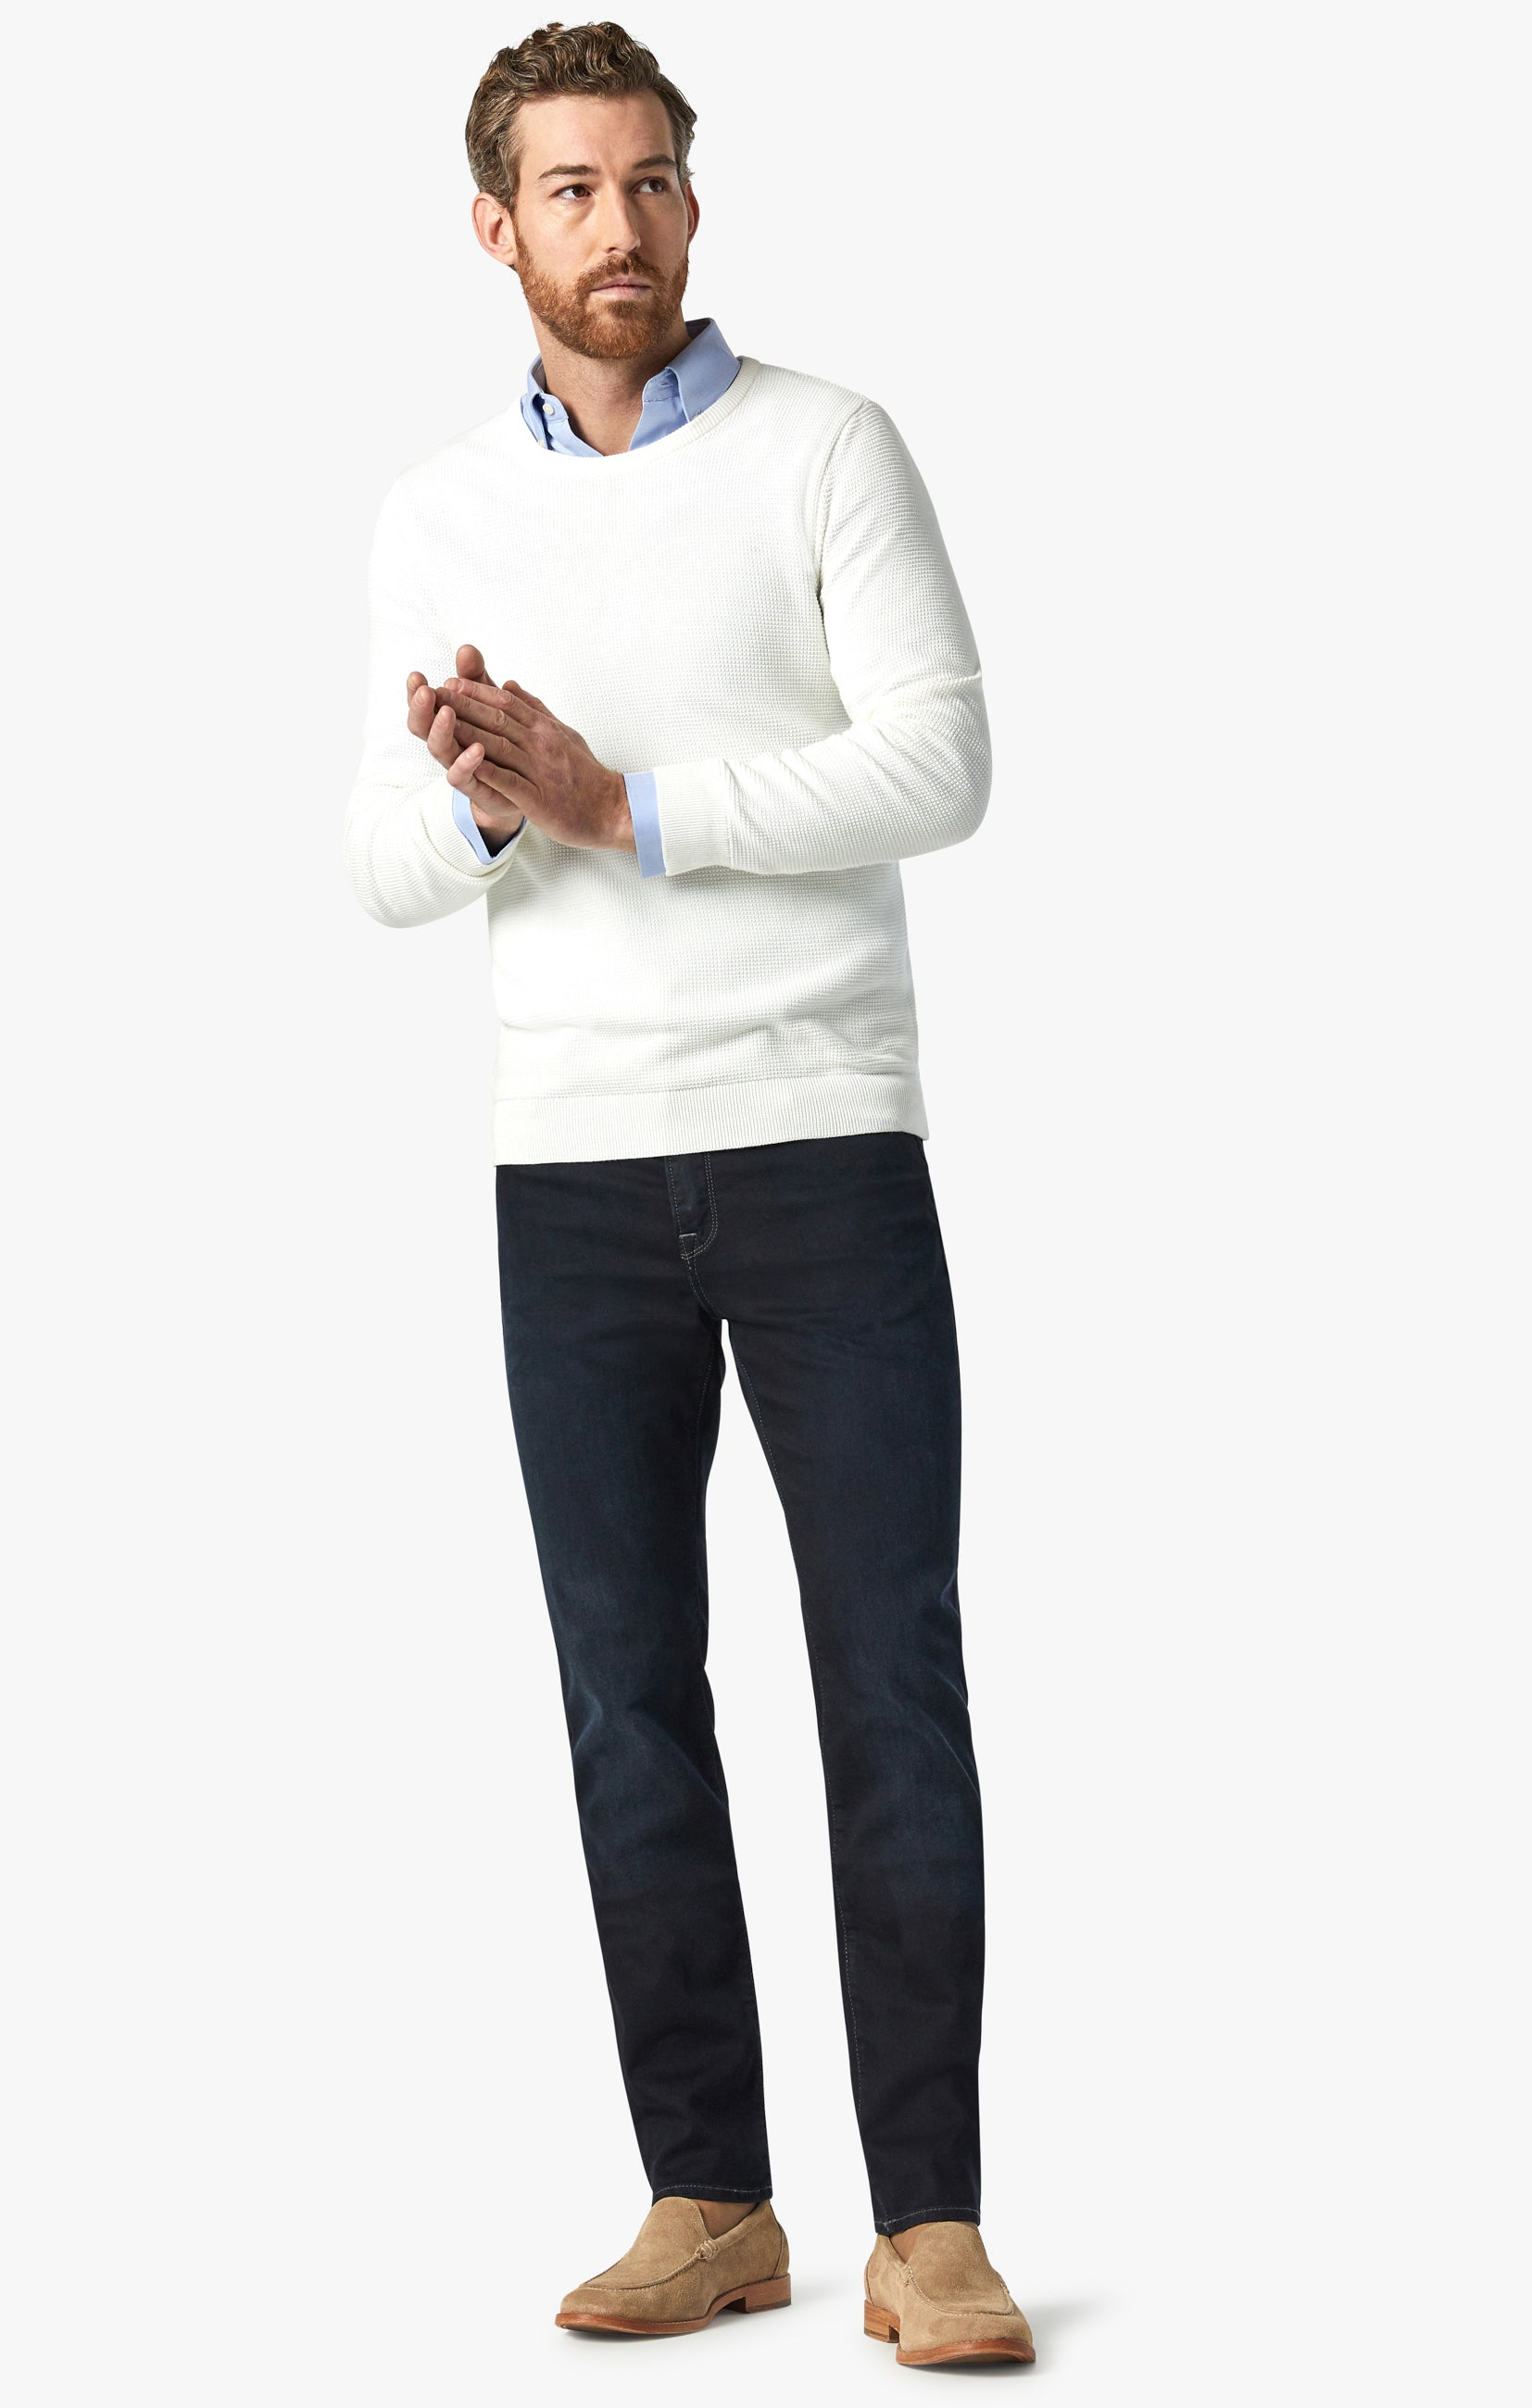 Champ Athletic Fit Jeans In Midnight Austin Image 4